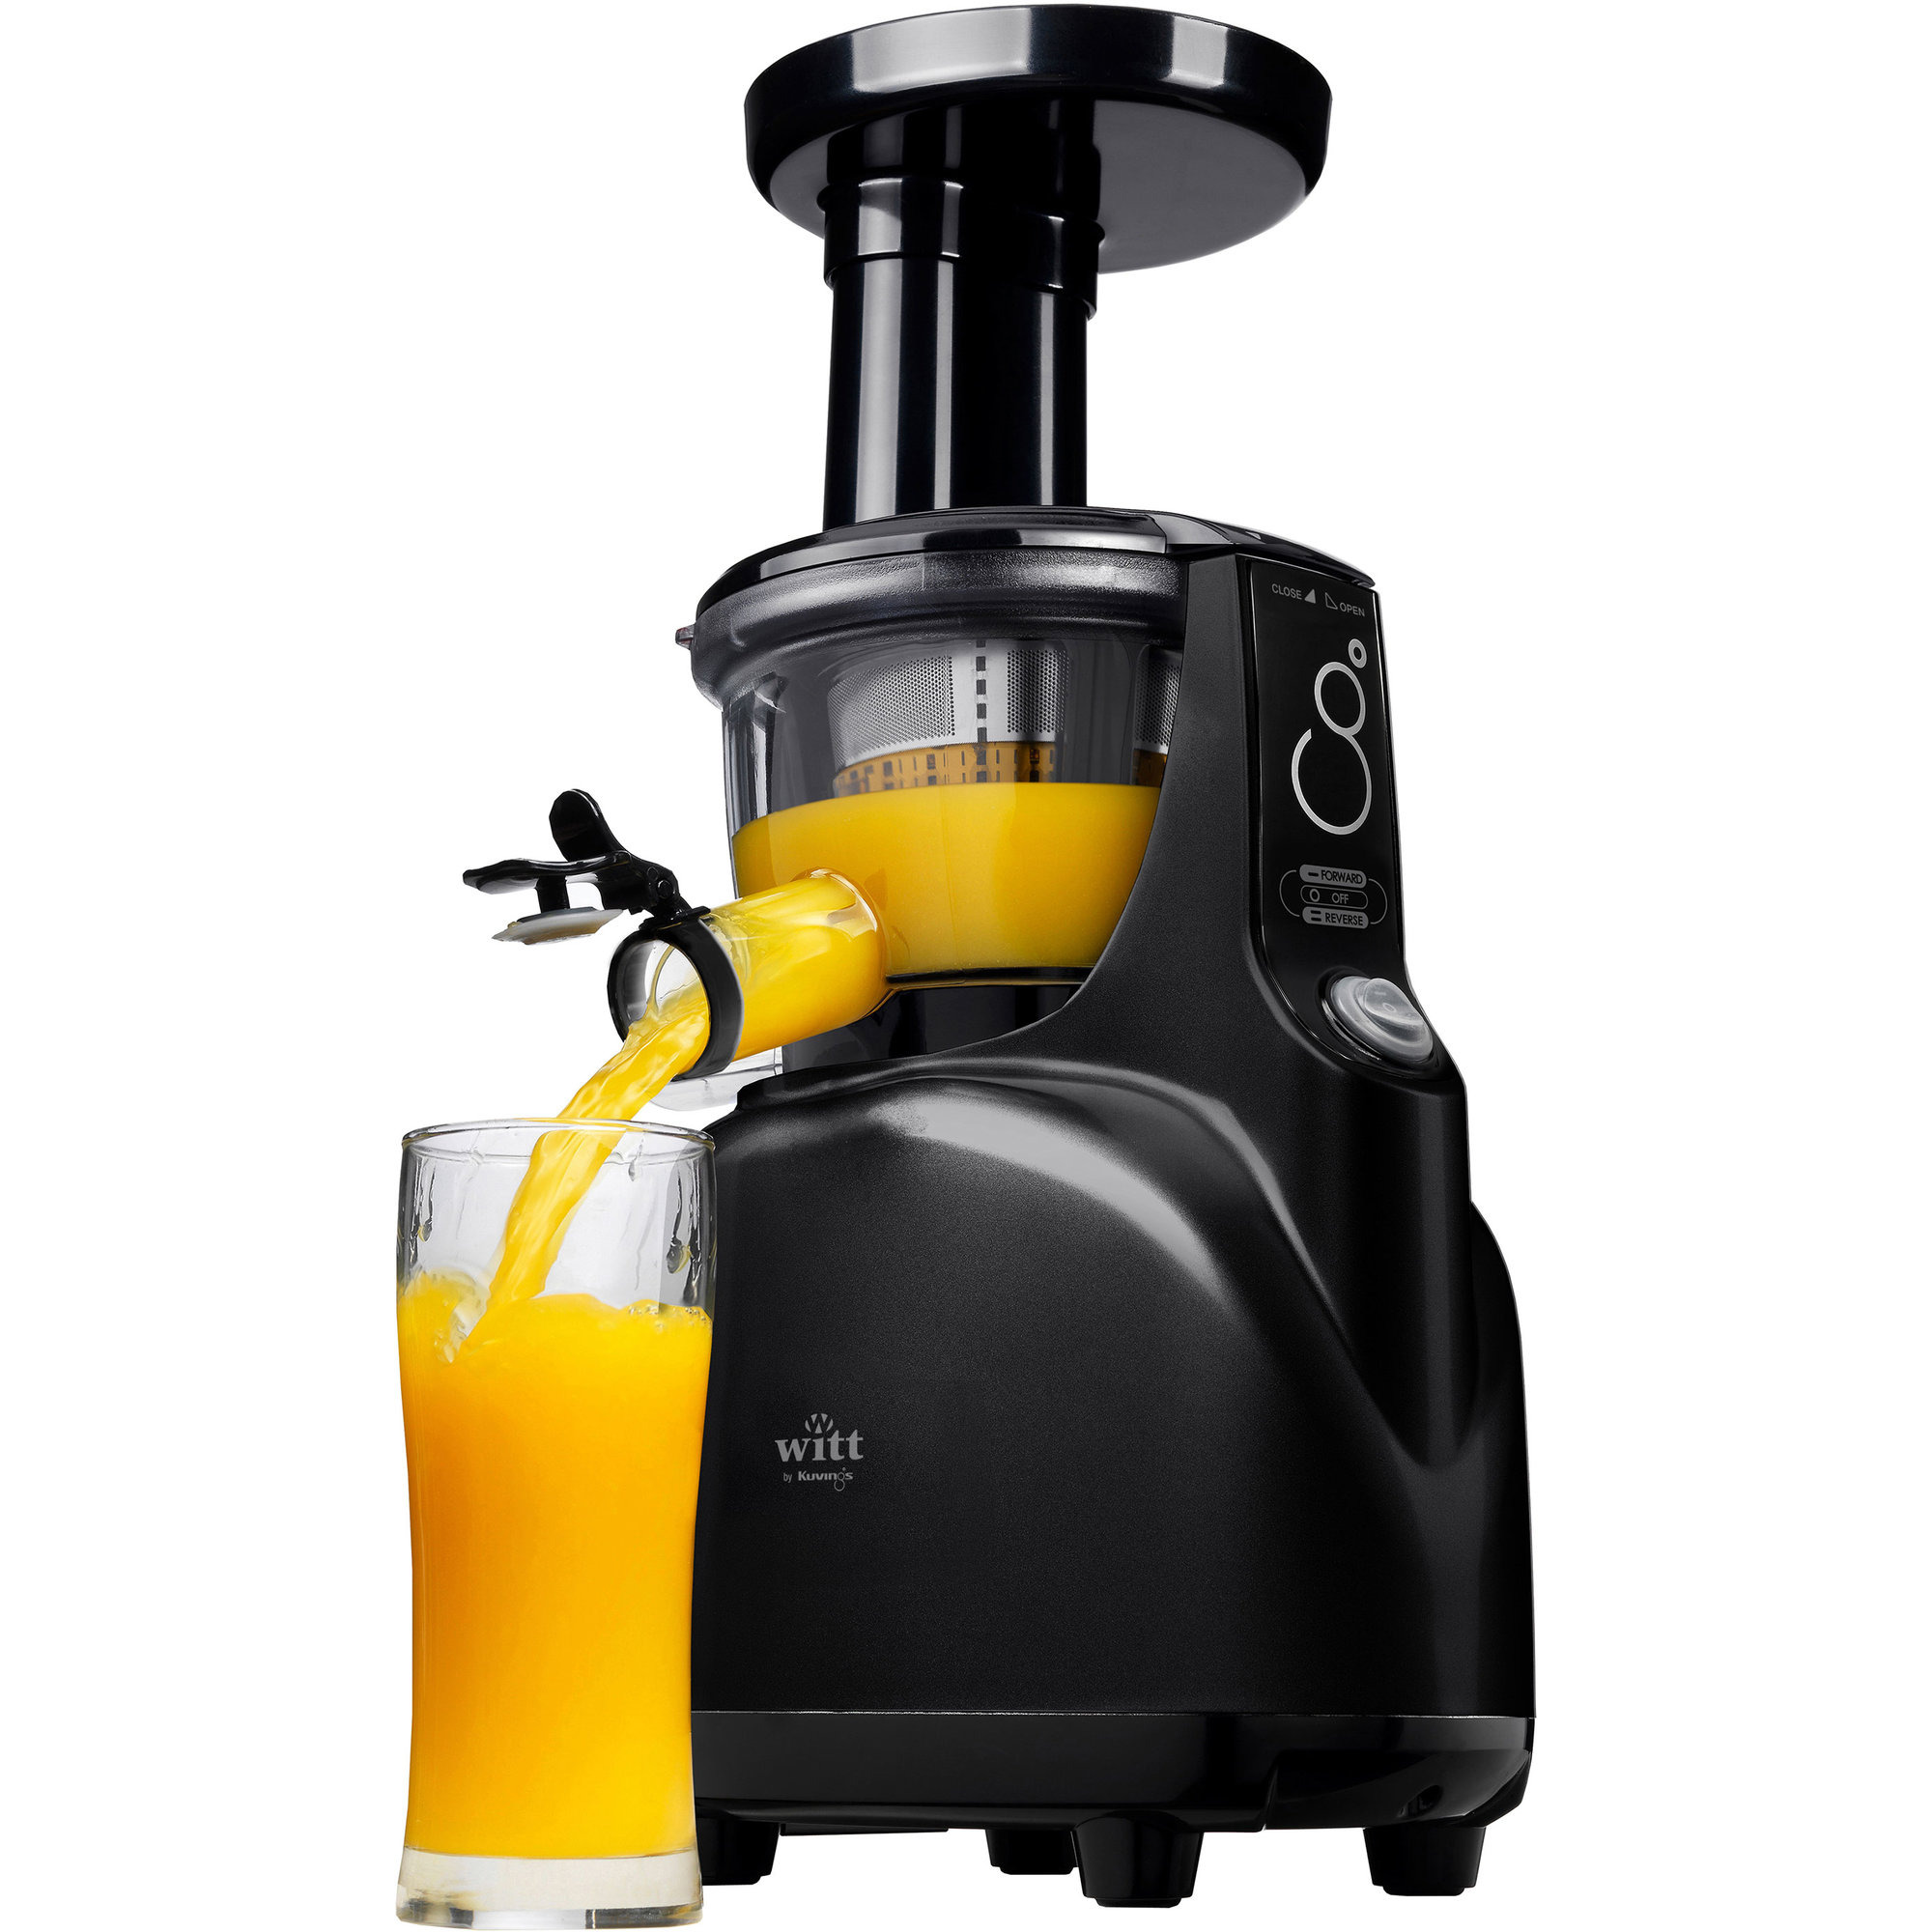 Slow Juicer Go Morgen Danmark : B5100 Silent Slow Juicer fra Witt by Kuvings Gratis Levering